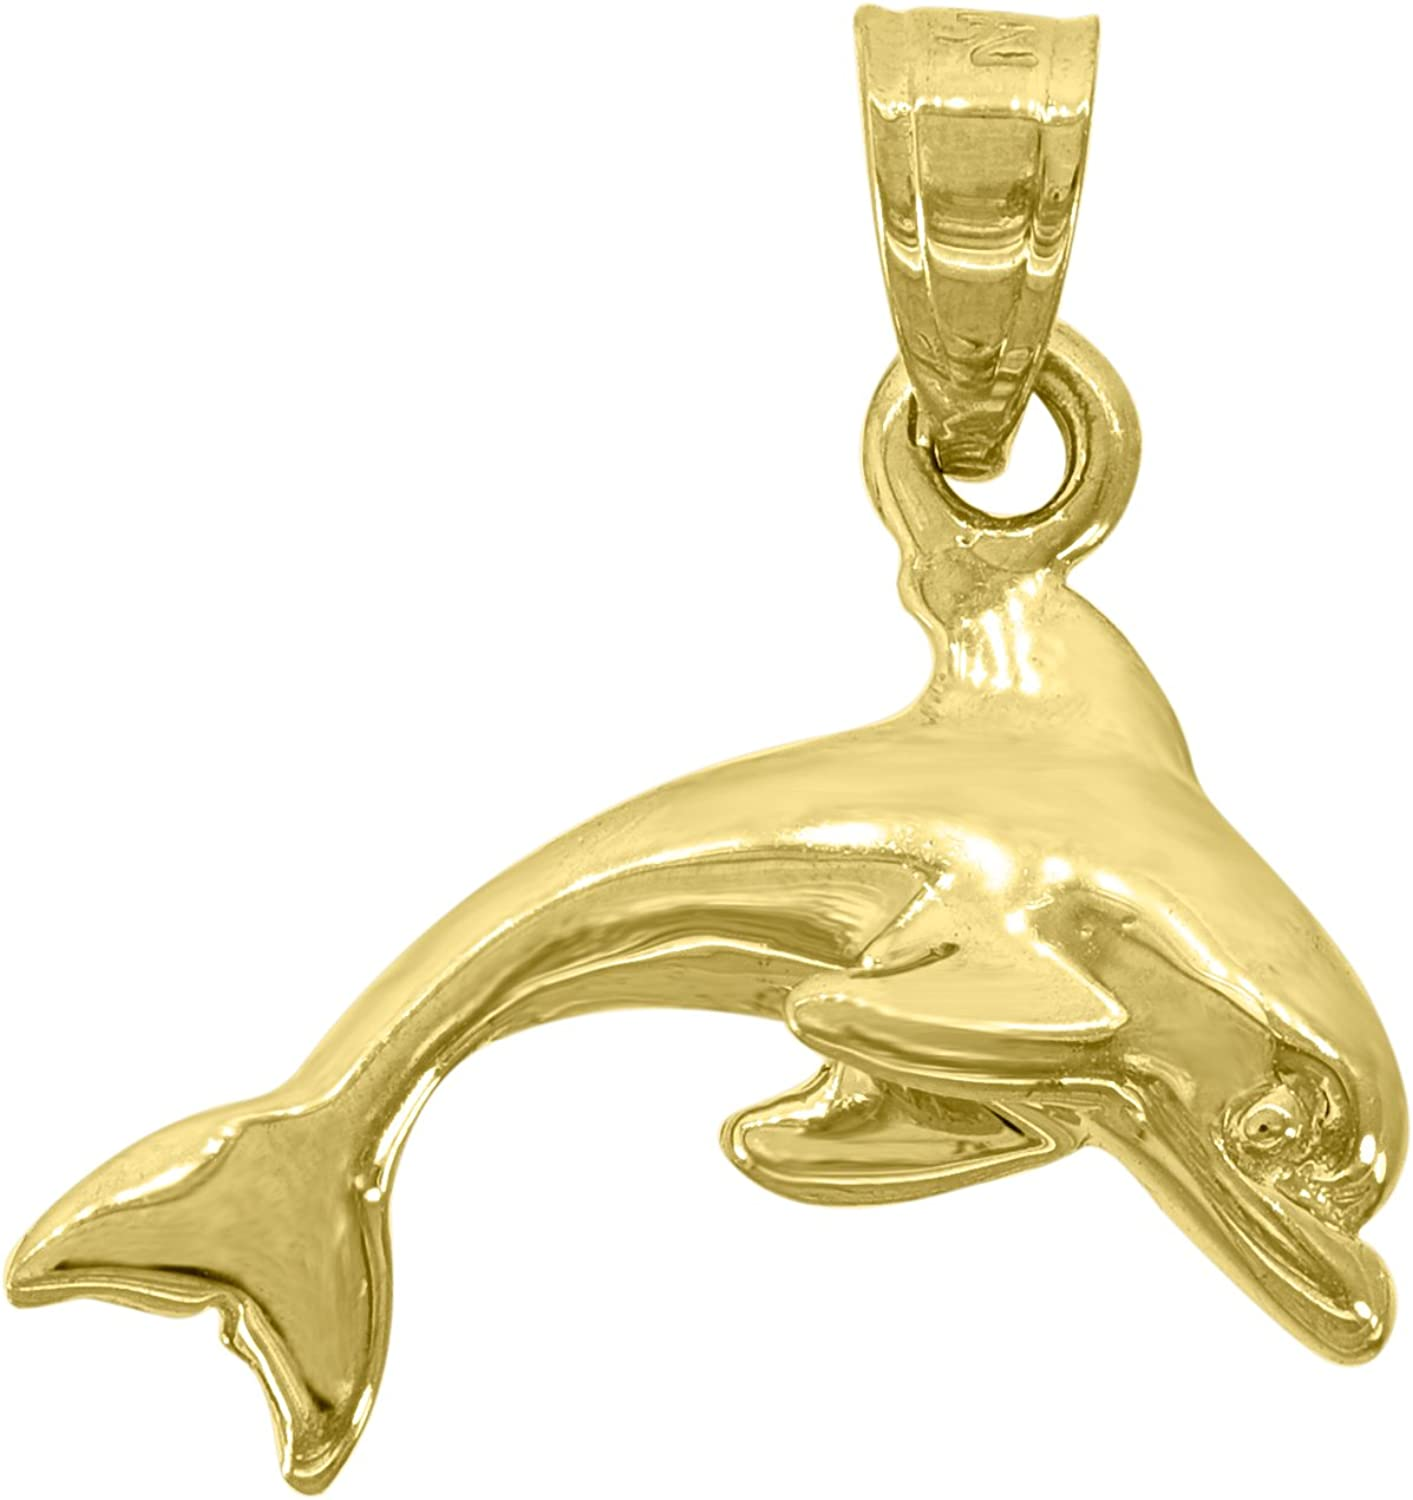 15mm x 18mm 14k Yellow Gold Dolphins Pendant